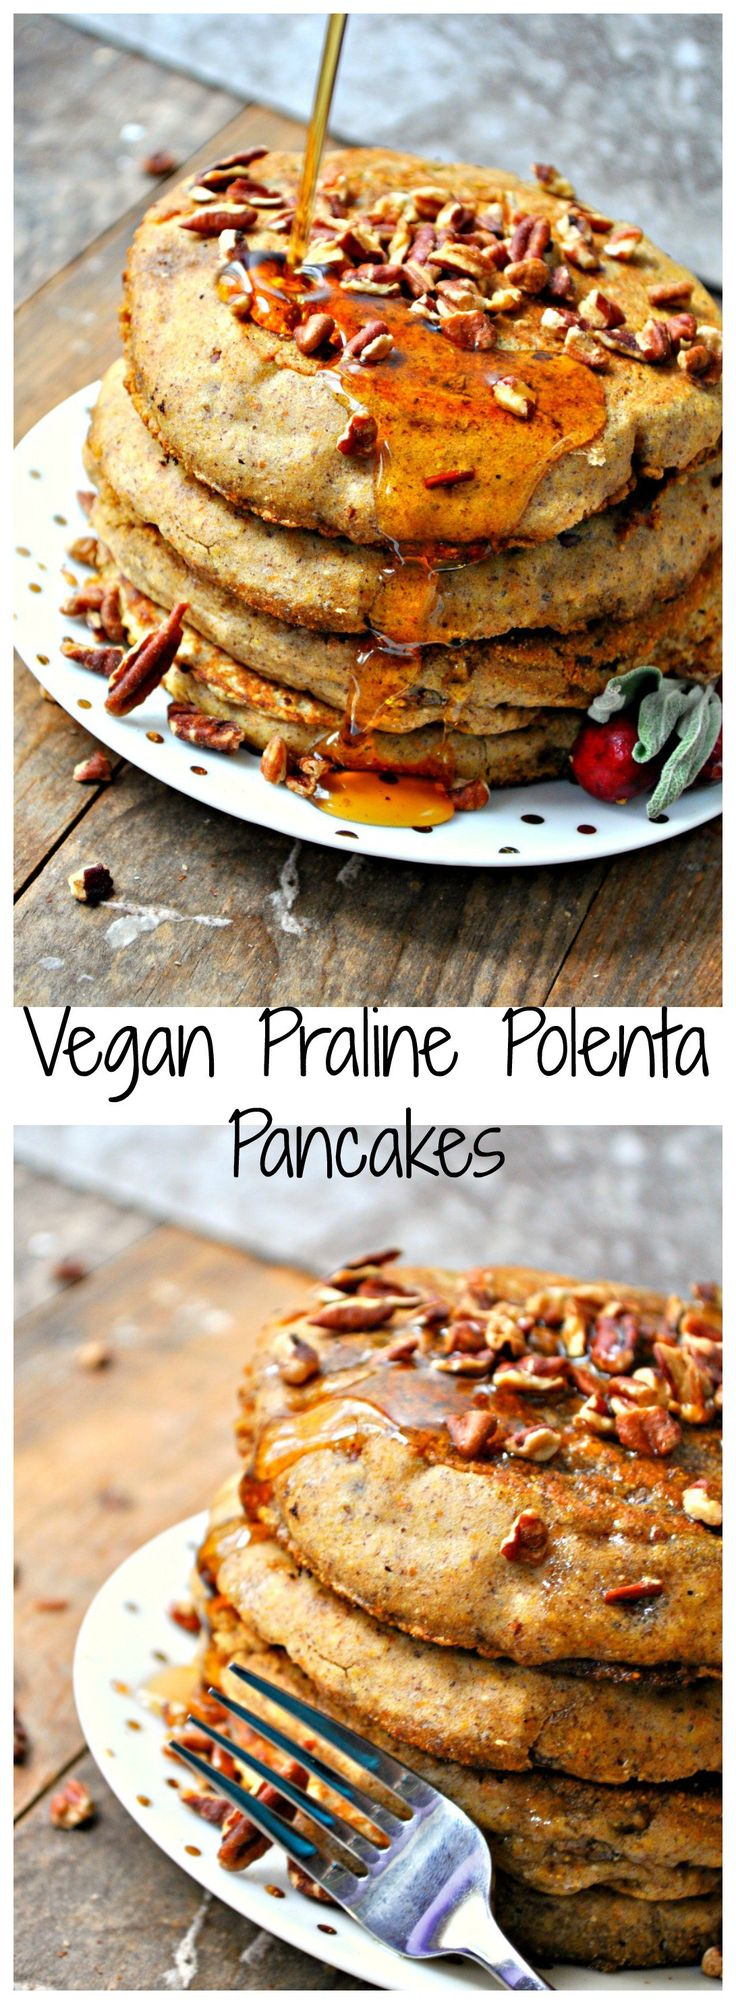 Crispy on the outside, moist and delicious inside. These vegan praline polenta pancakes are filled with brown sugar and pecans! They are unique and amazing!